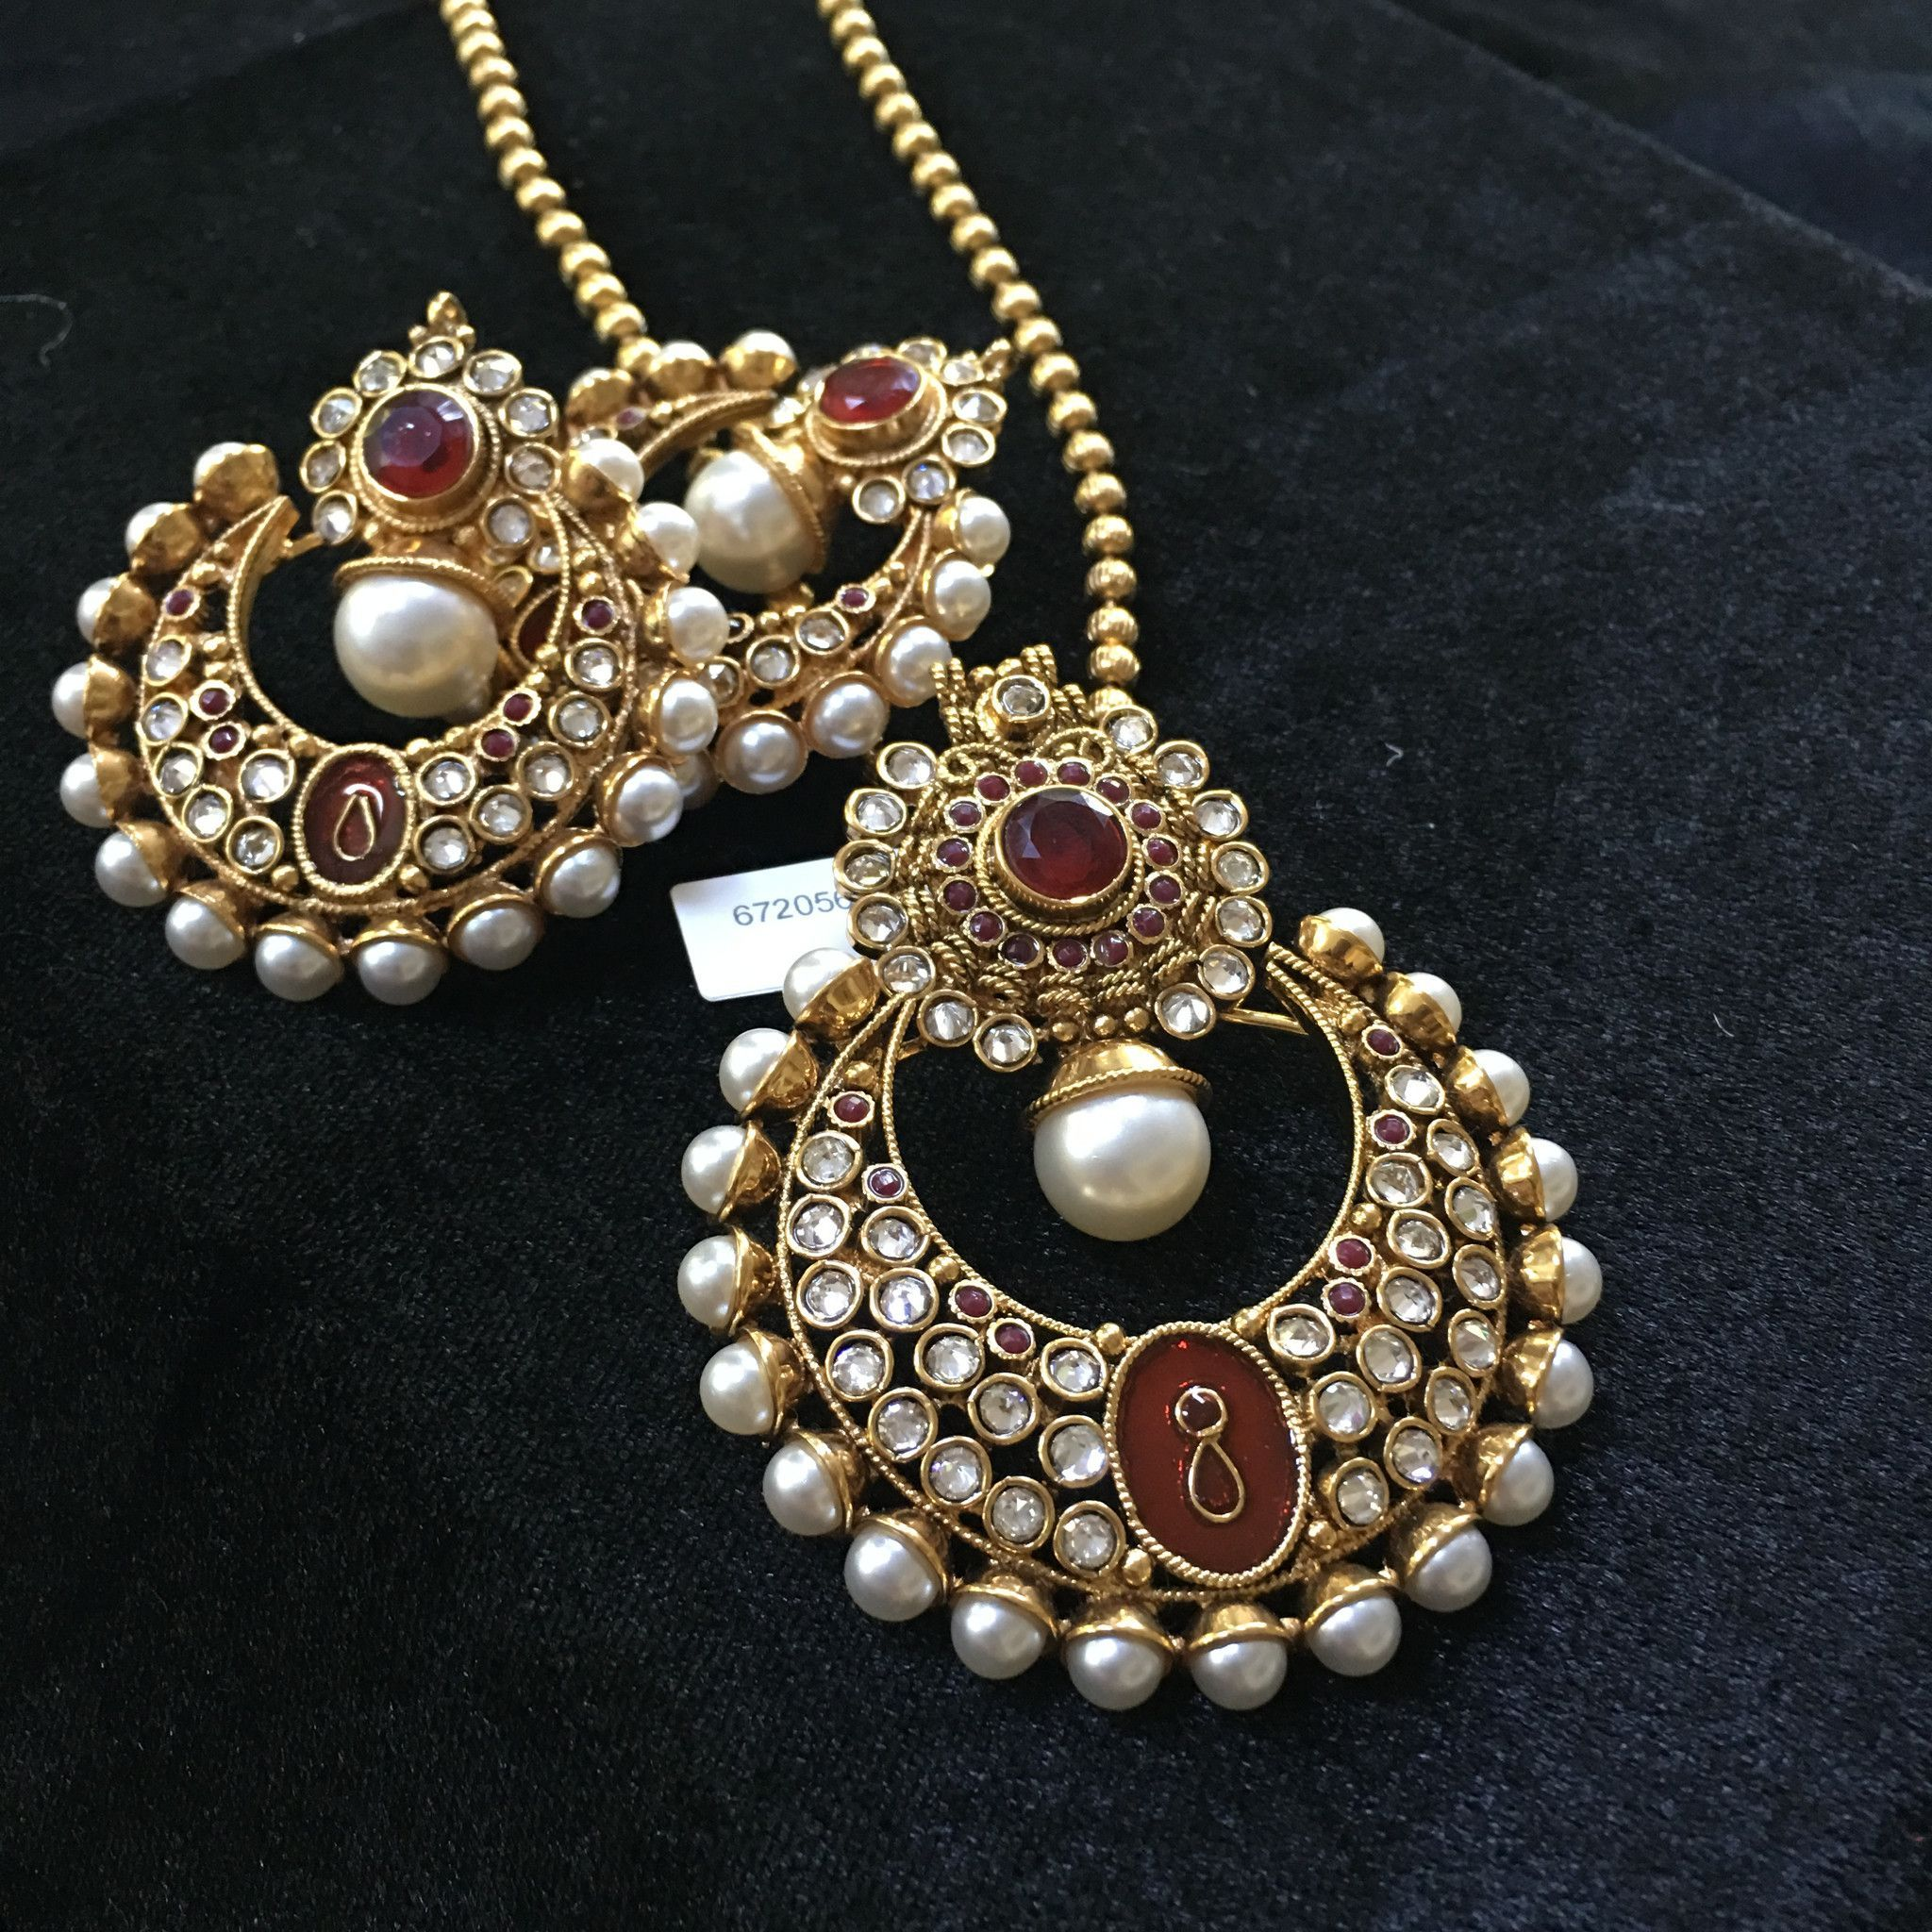 Meenakari pendants in various colors with ball chain or moti chain